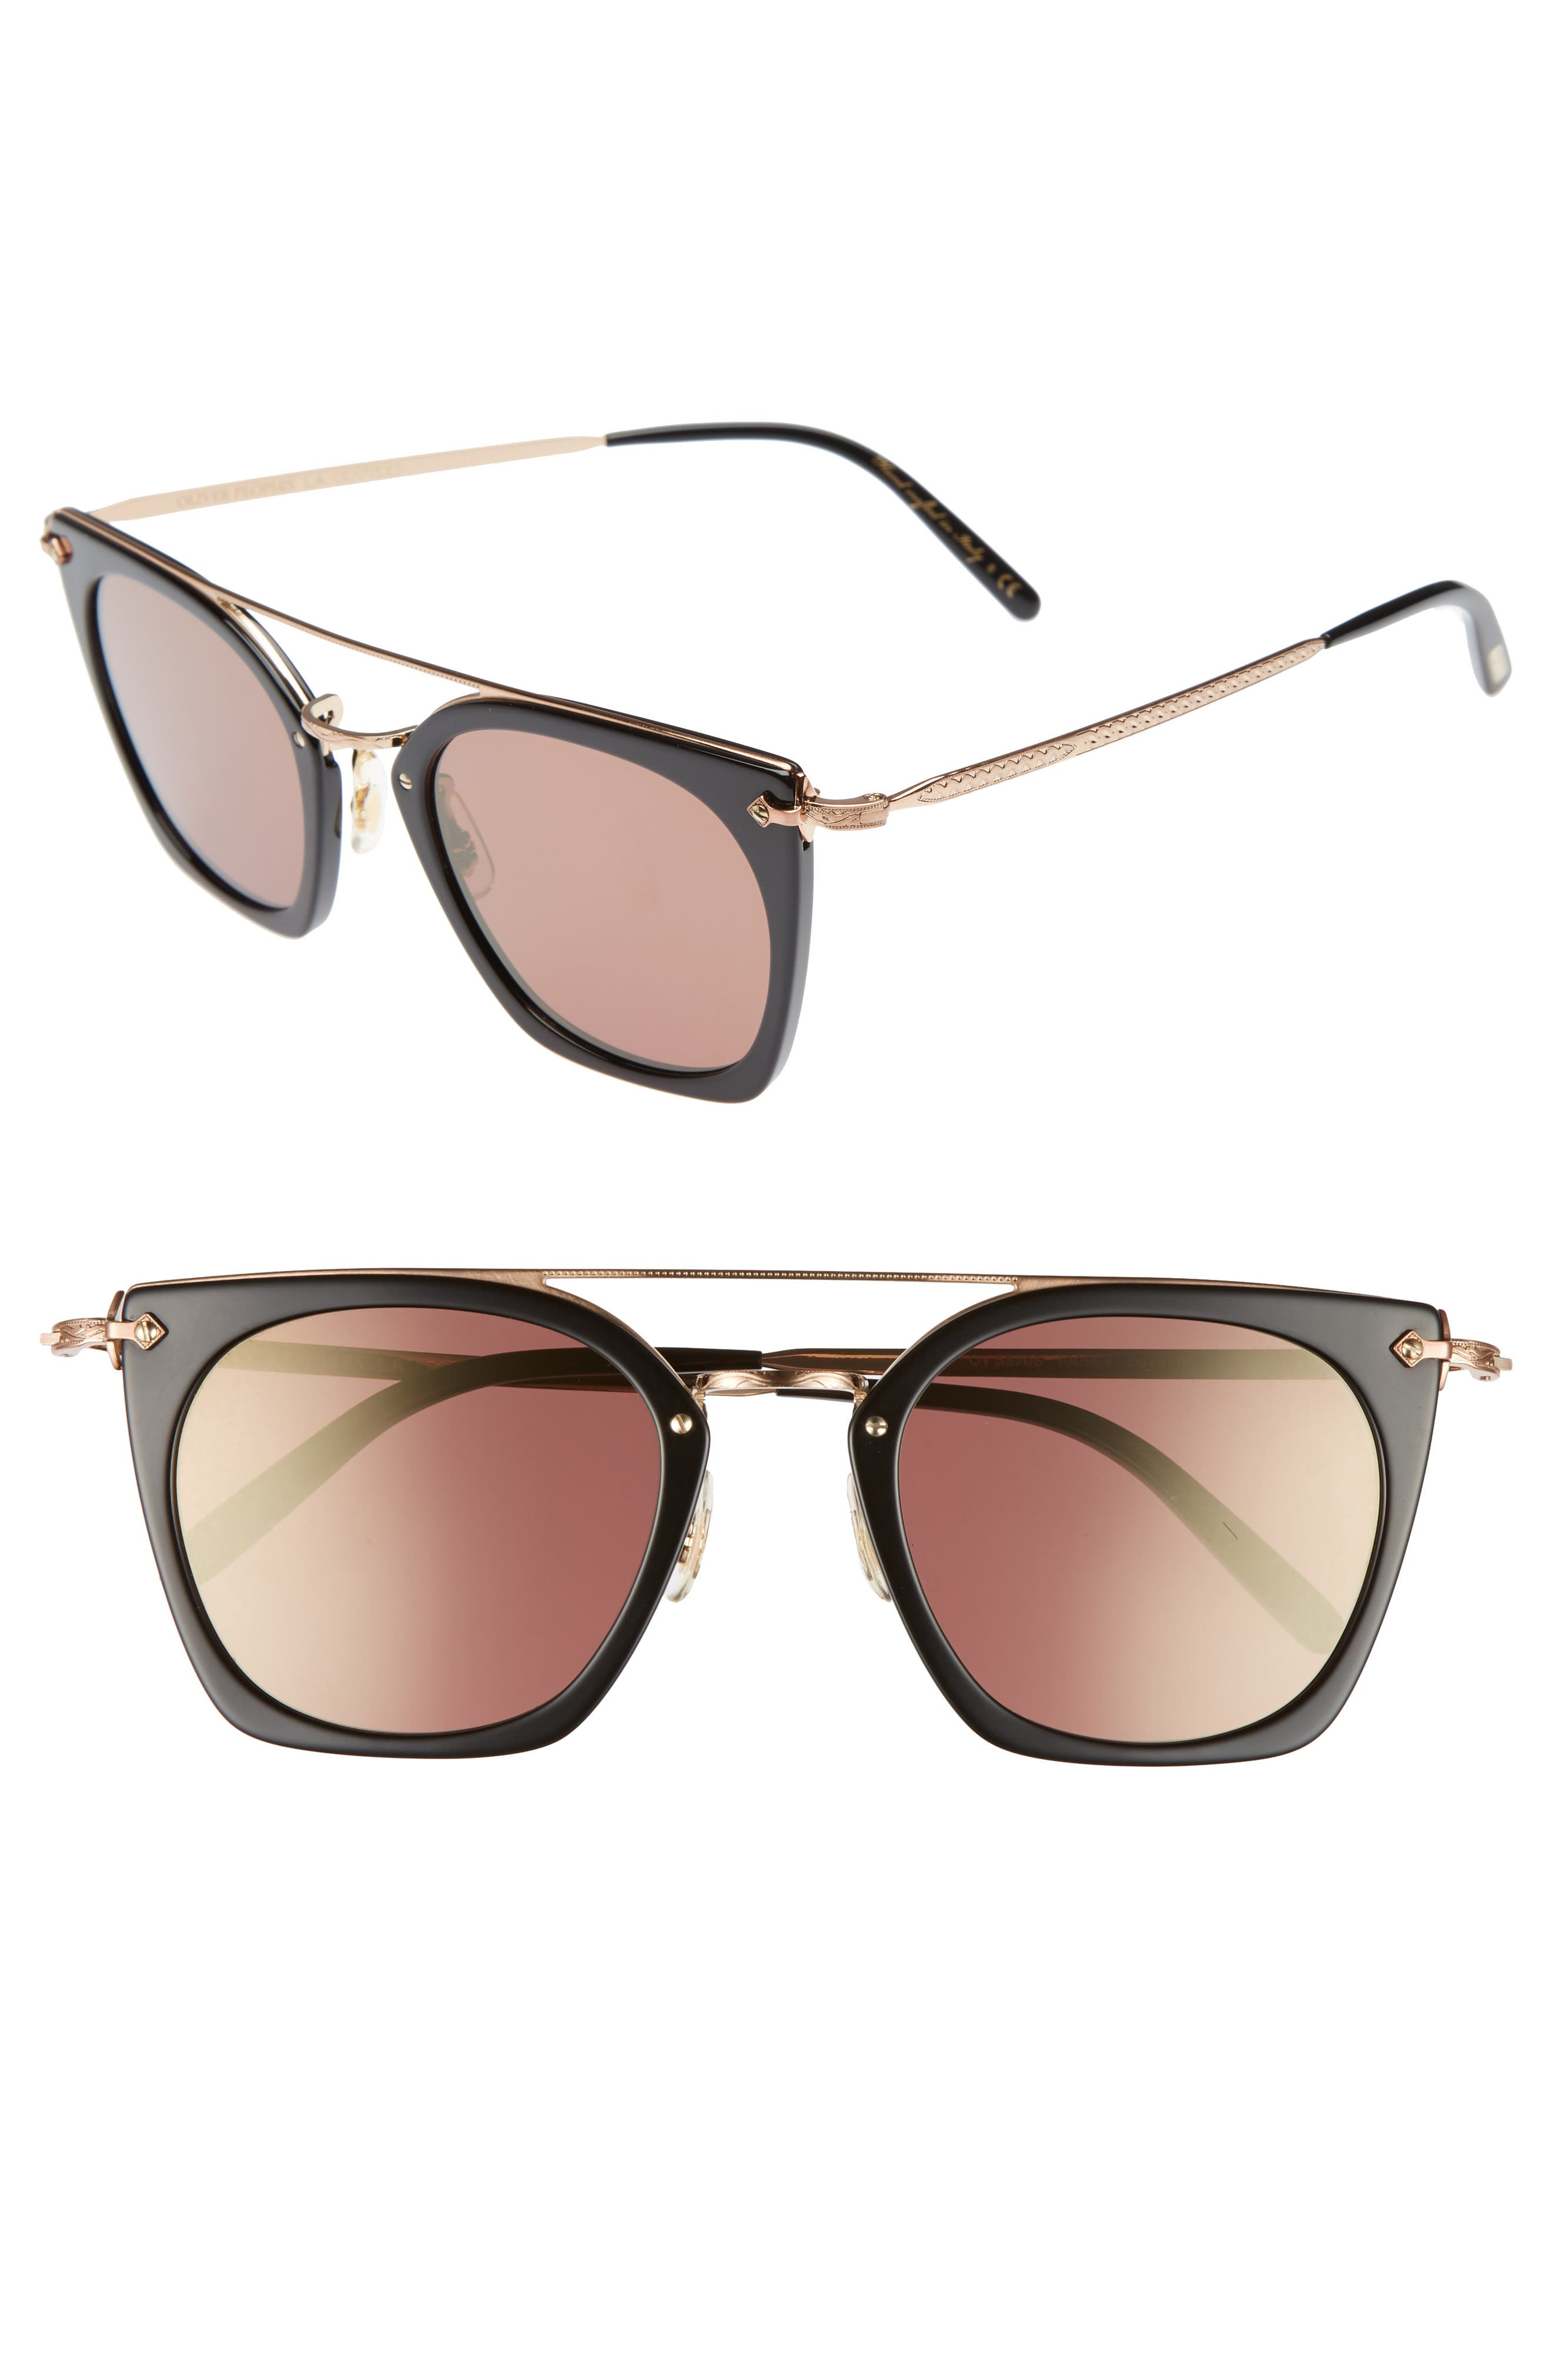 Oliver Peoples Dacette 50Mm Square Aviator Sunglasses - Black/ Rose Gold